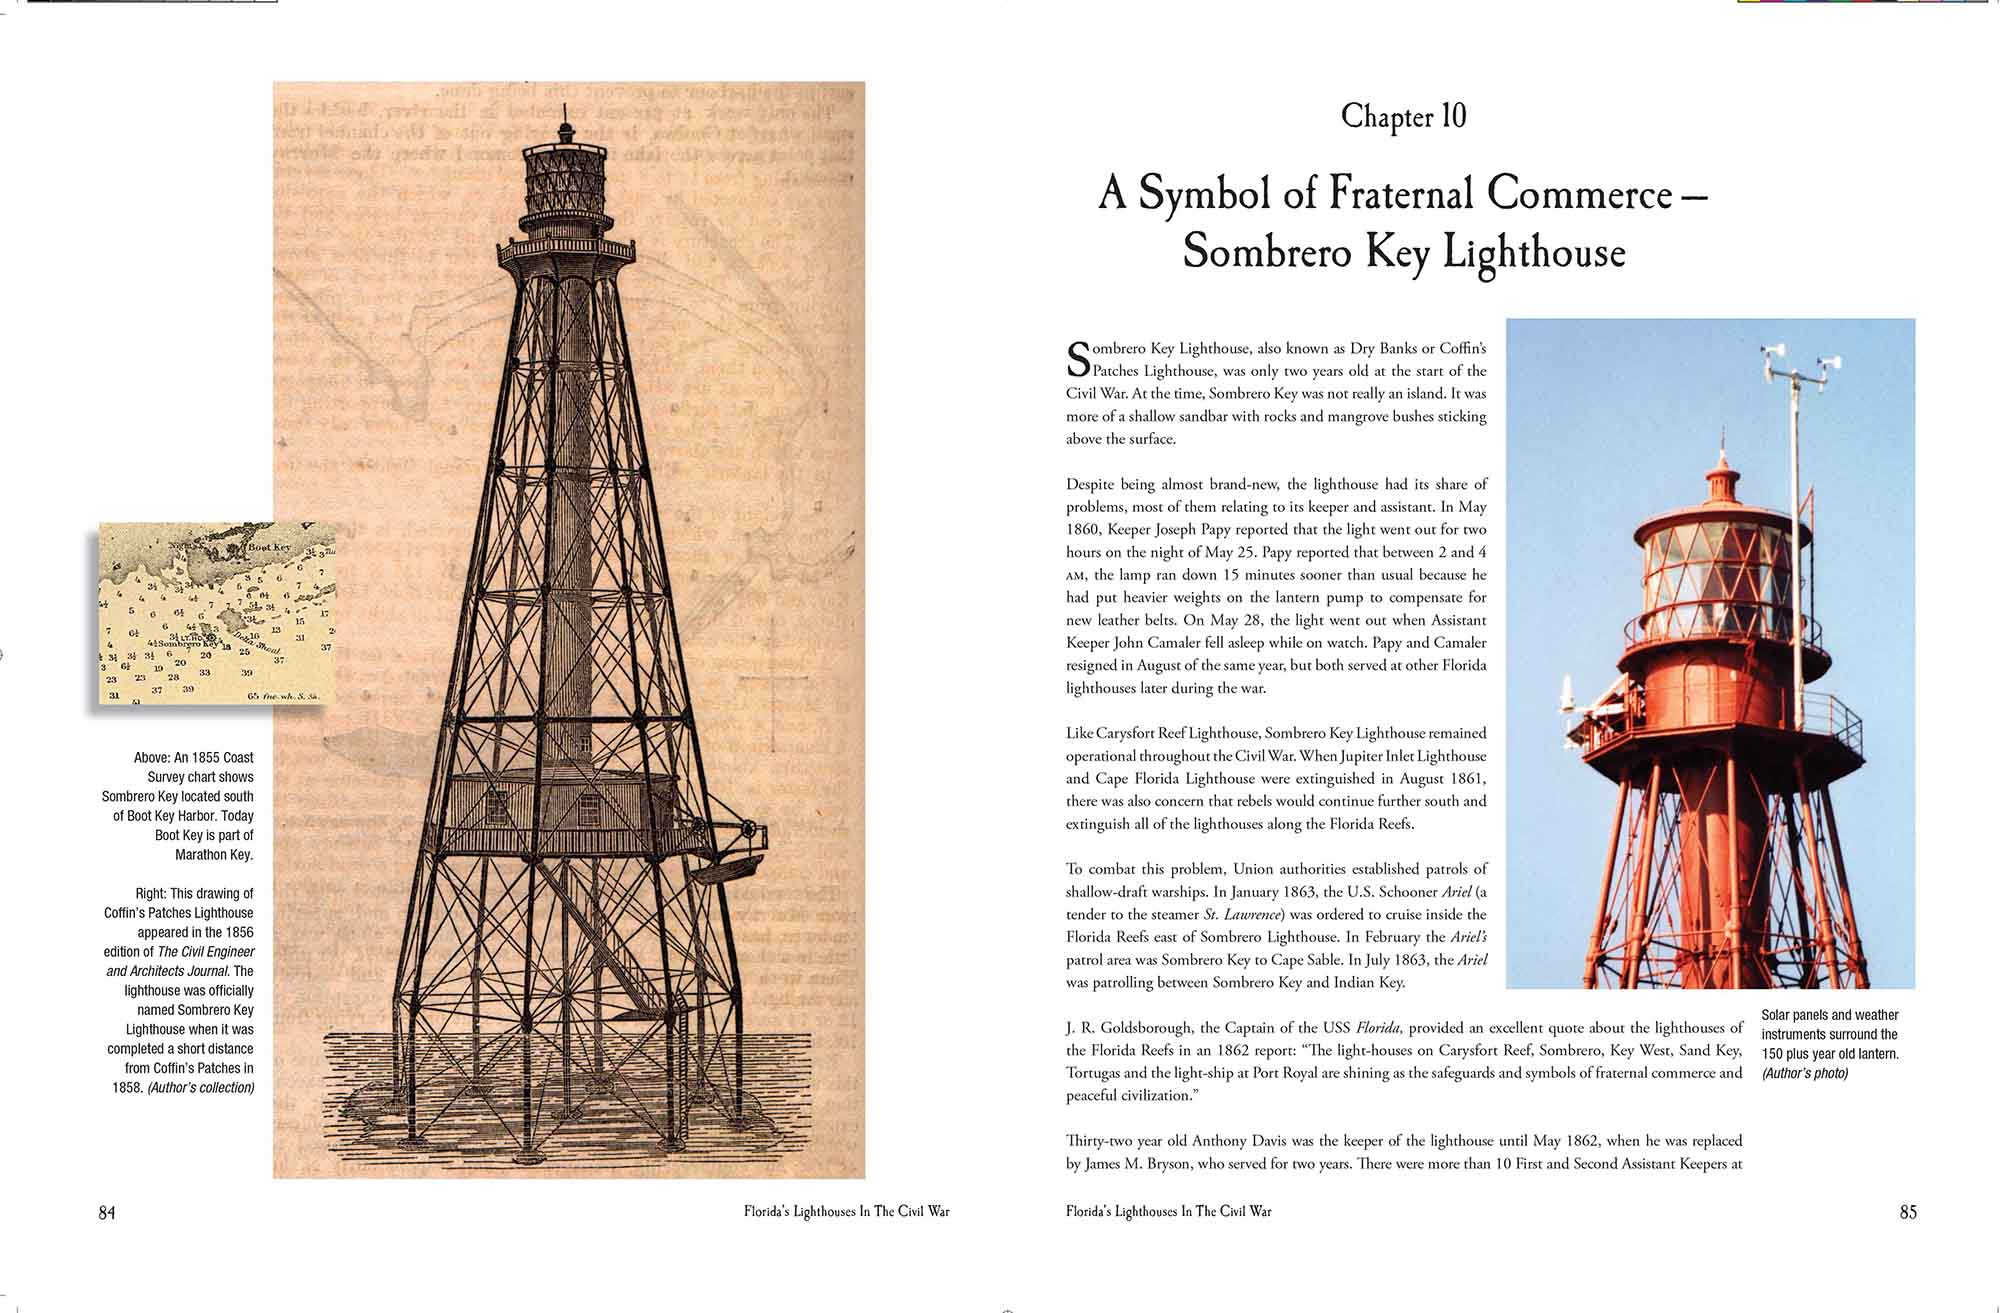 Spread for Florida Lighthouses in the Civil War